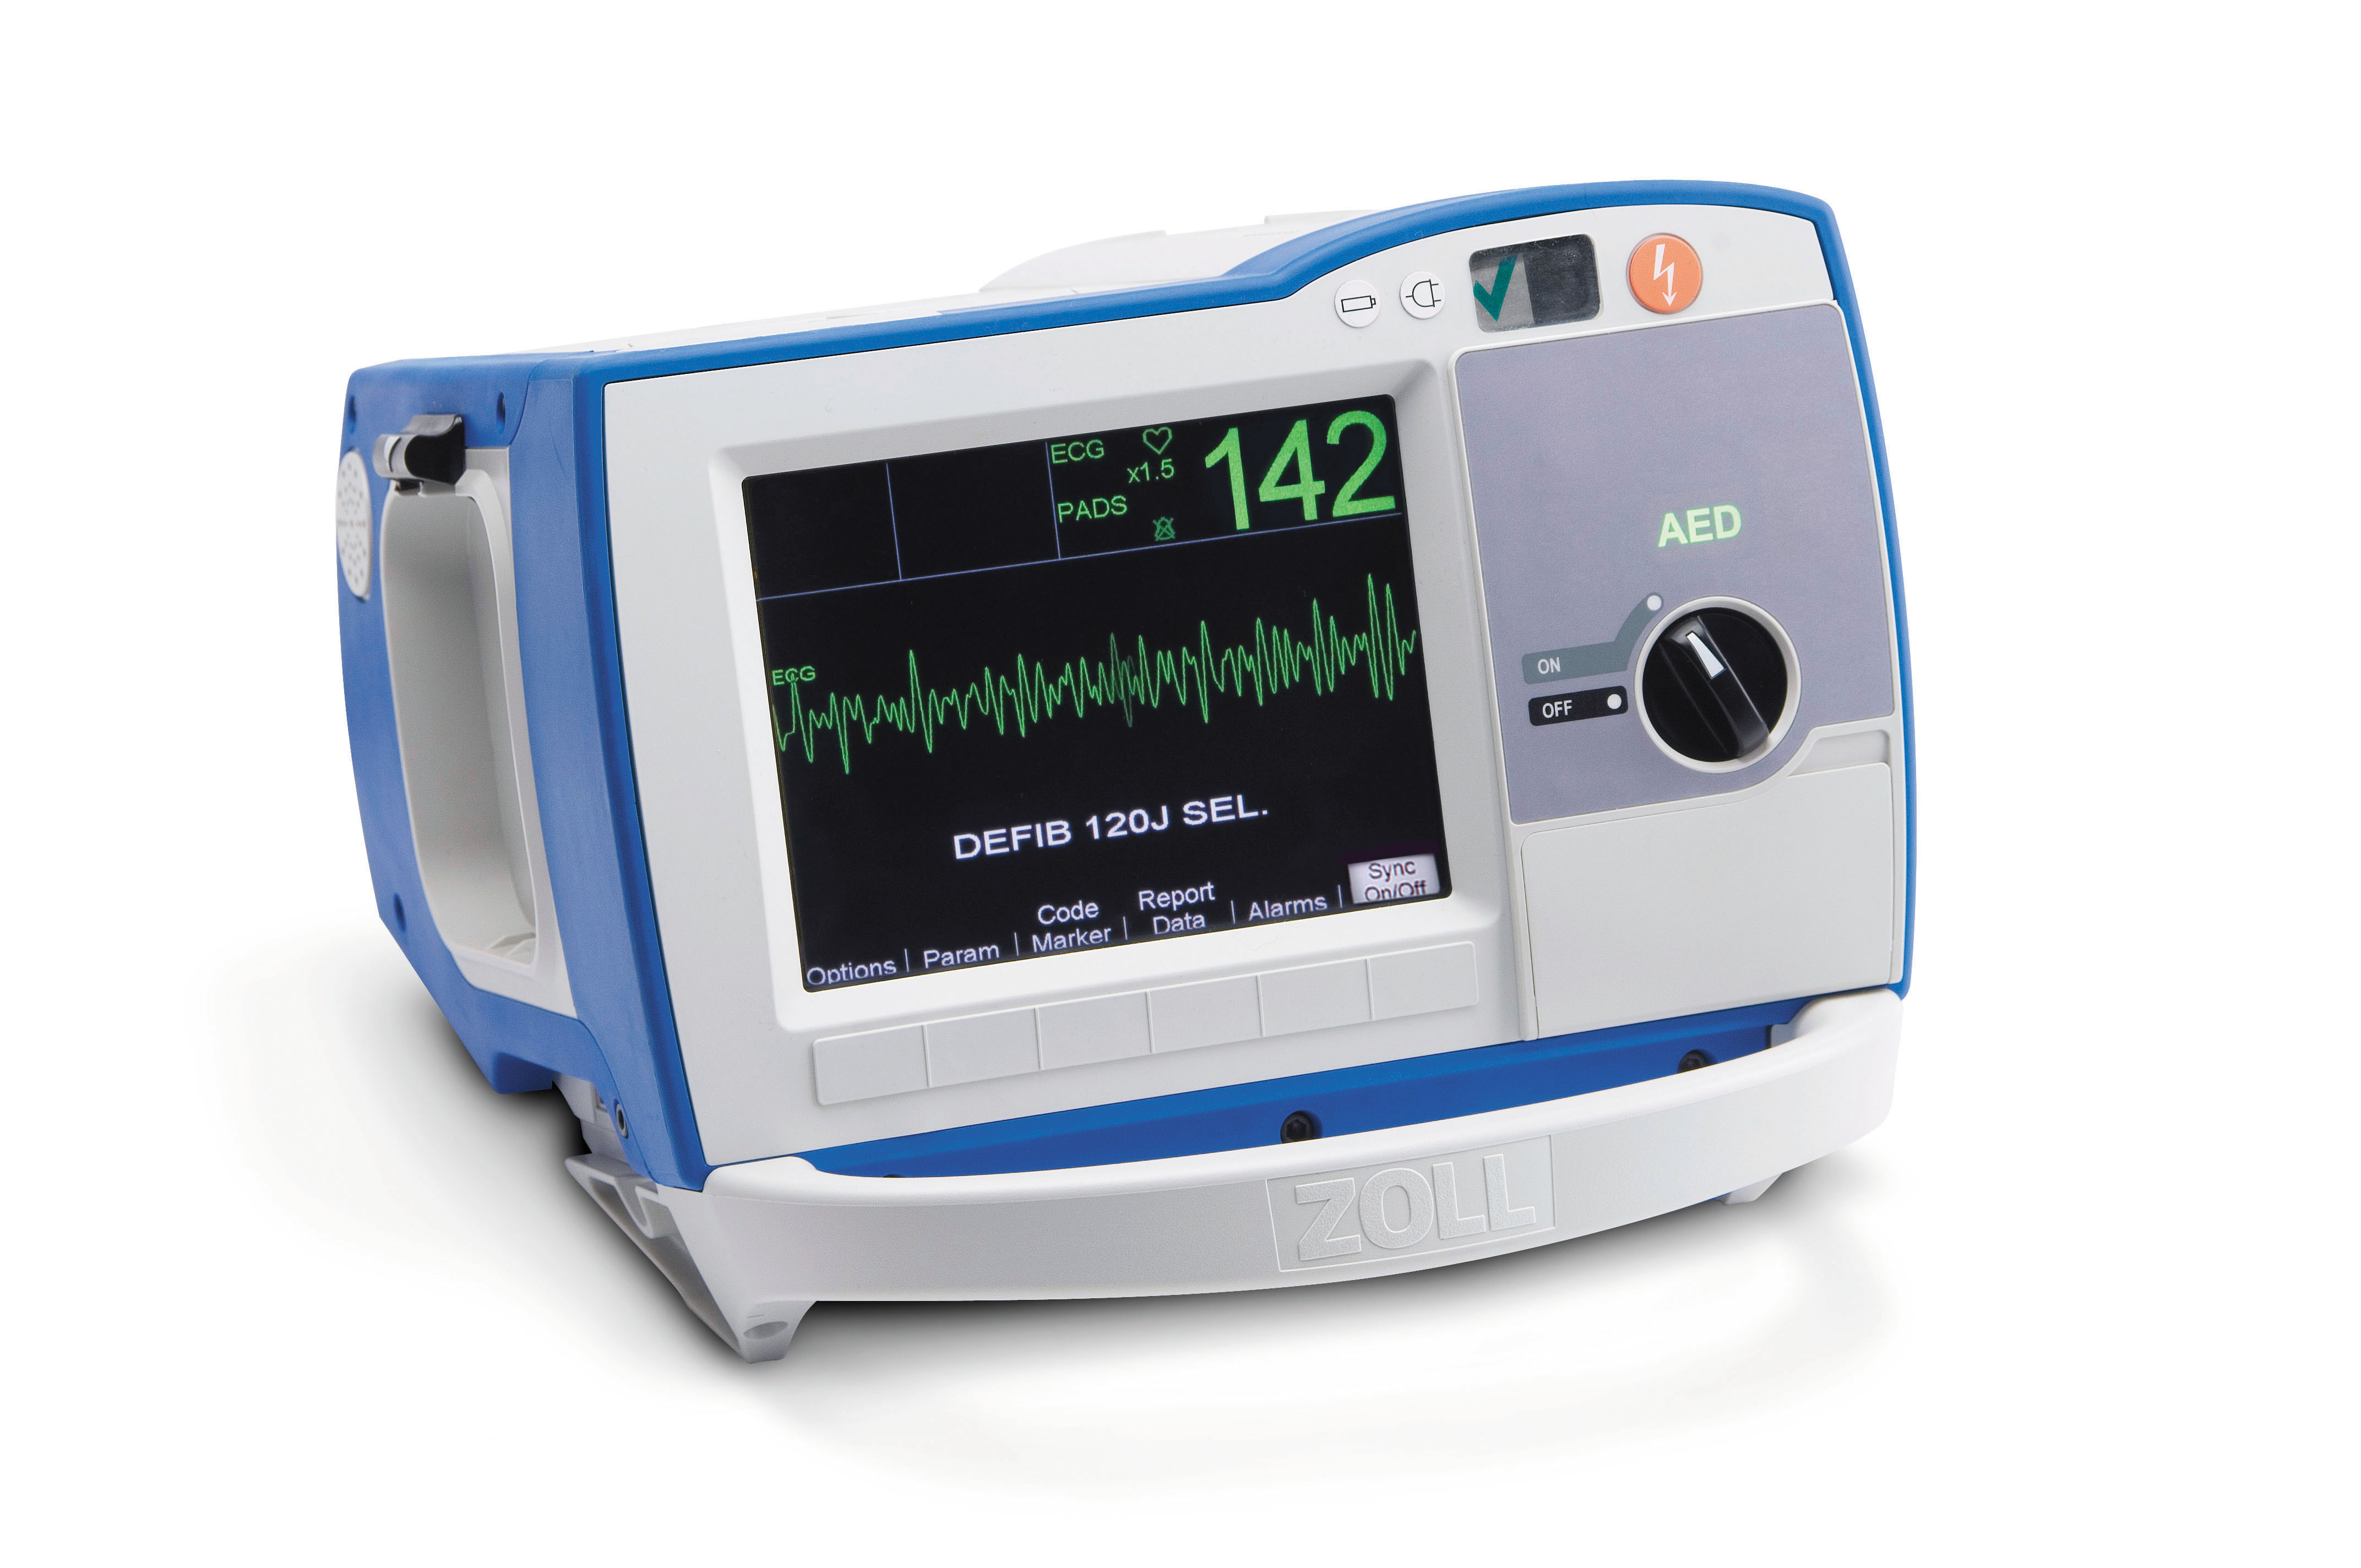 R Series Plus Package – For BLS Users